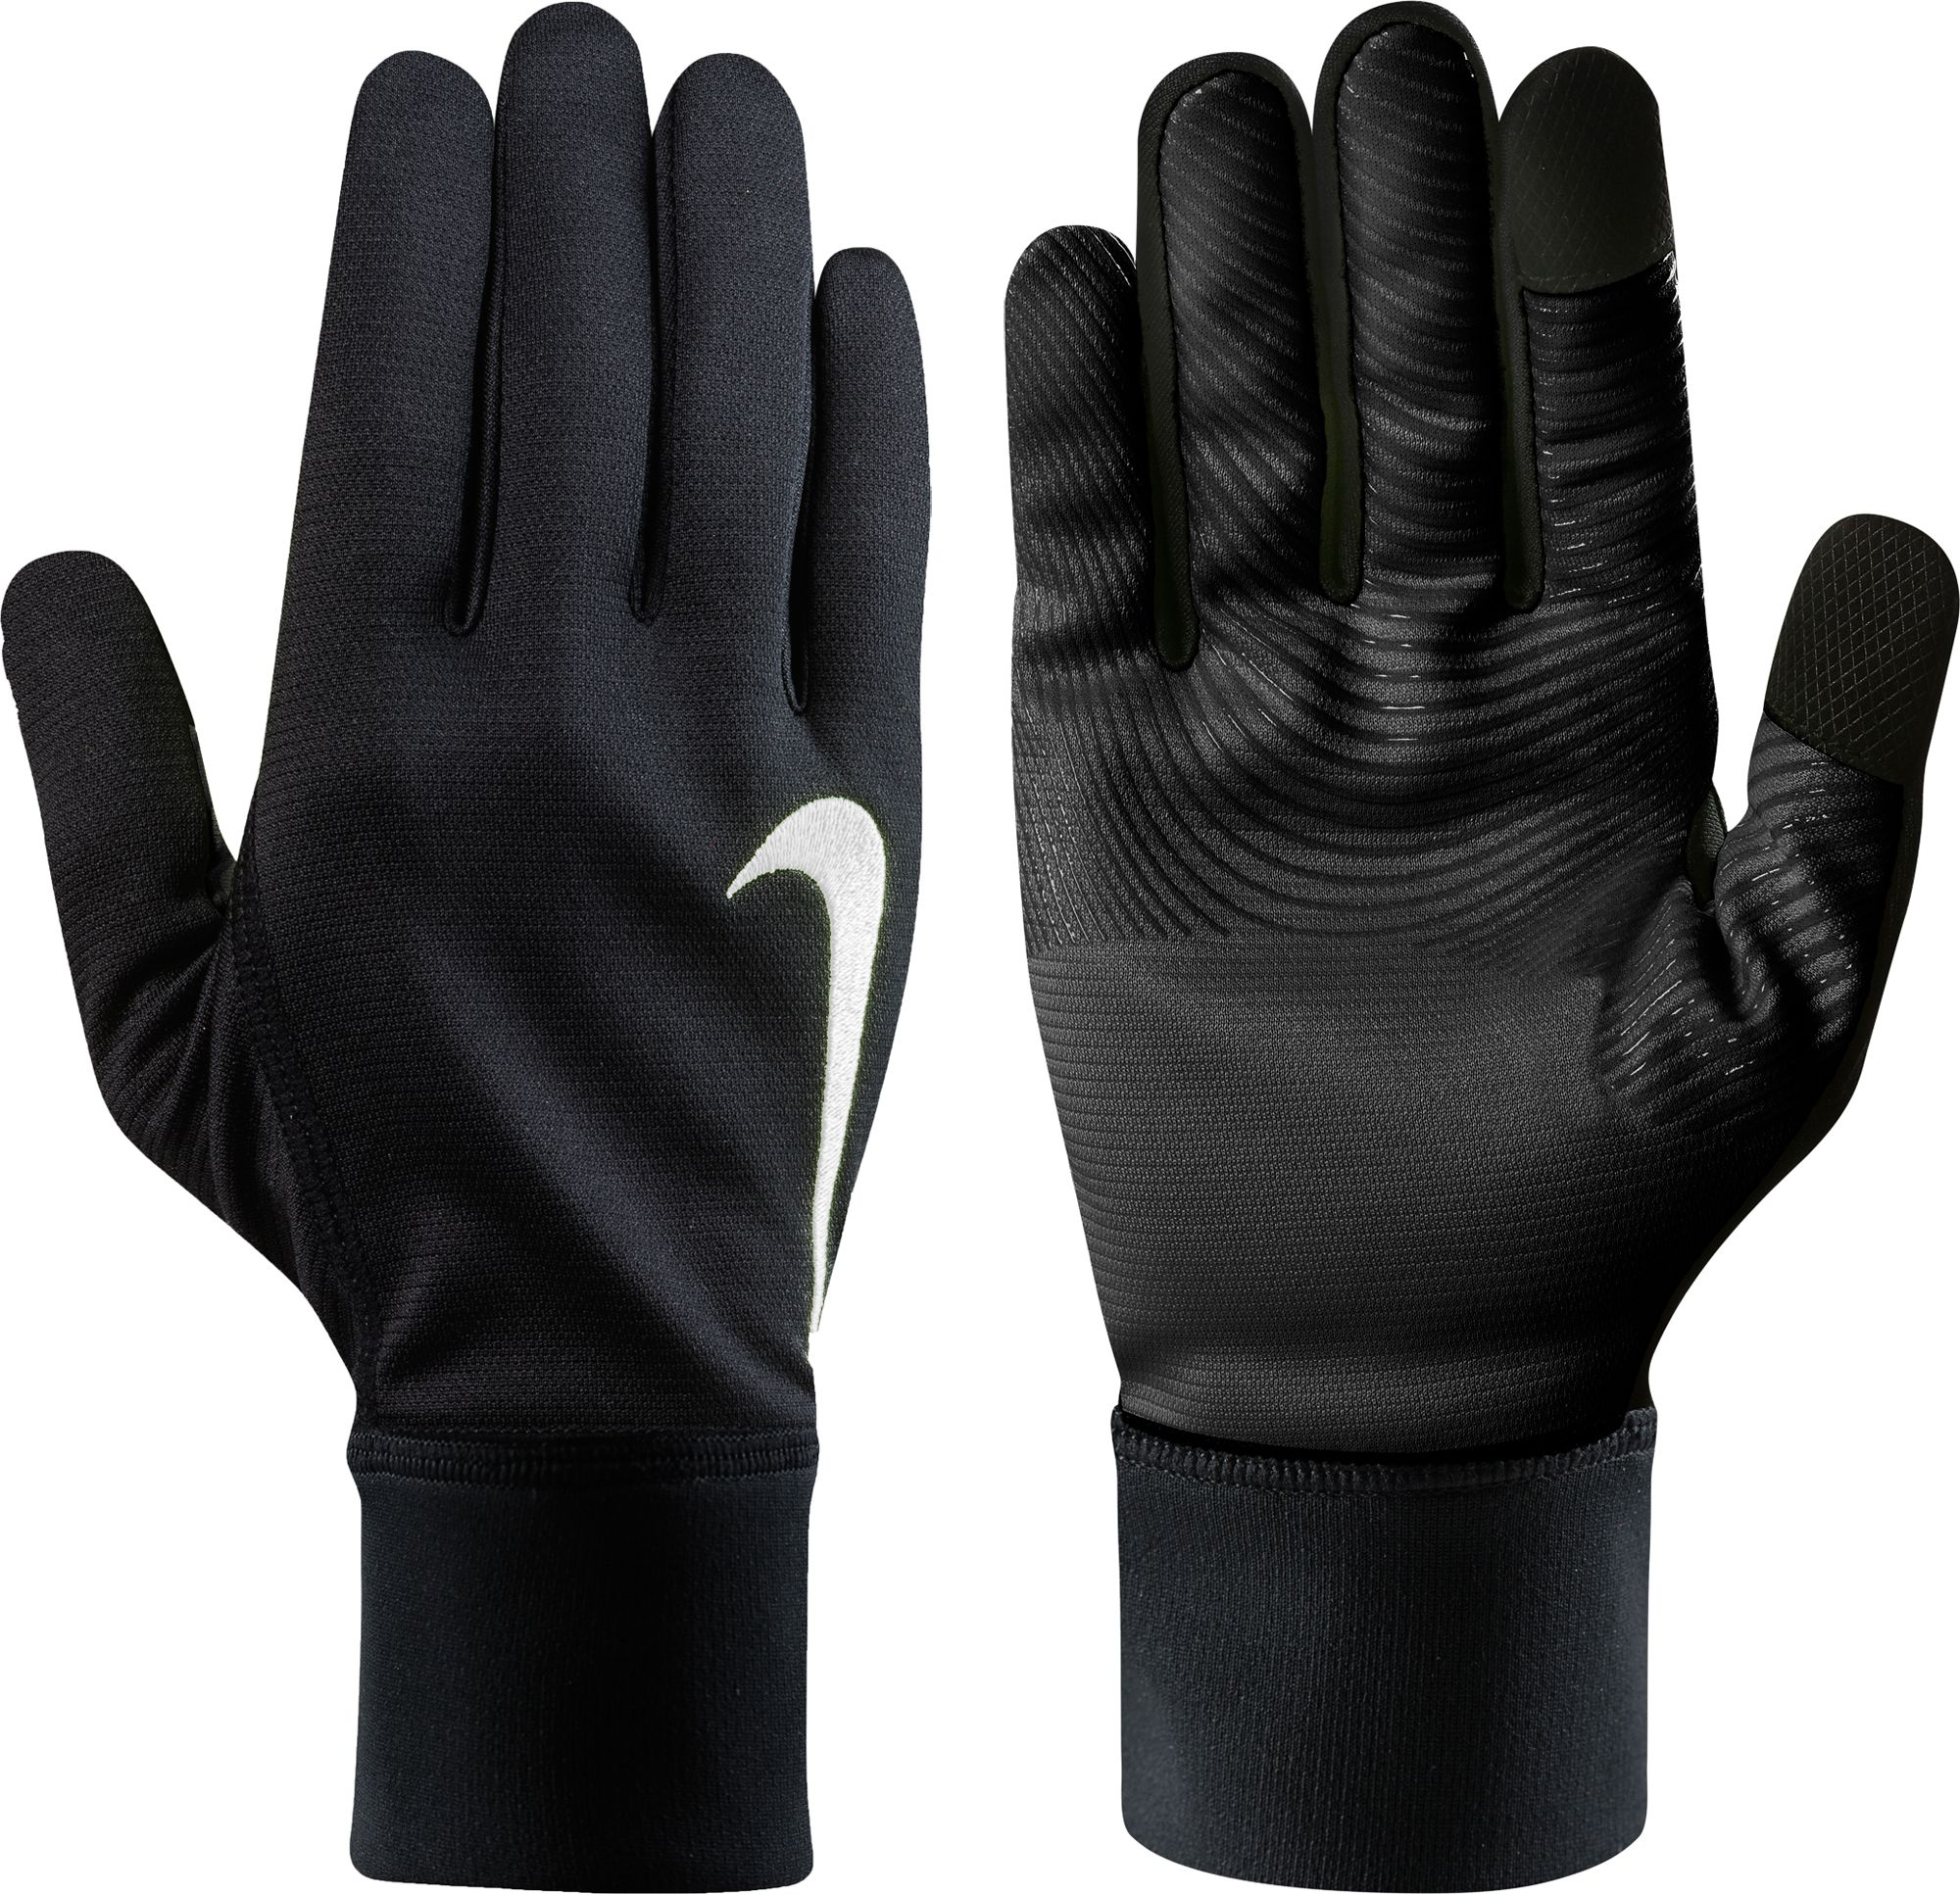 Mens leather kid gloves - Product Image Nike Men S Therma Fit Gloves